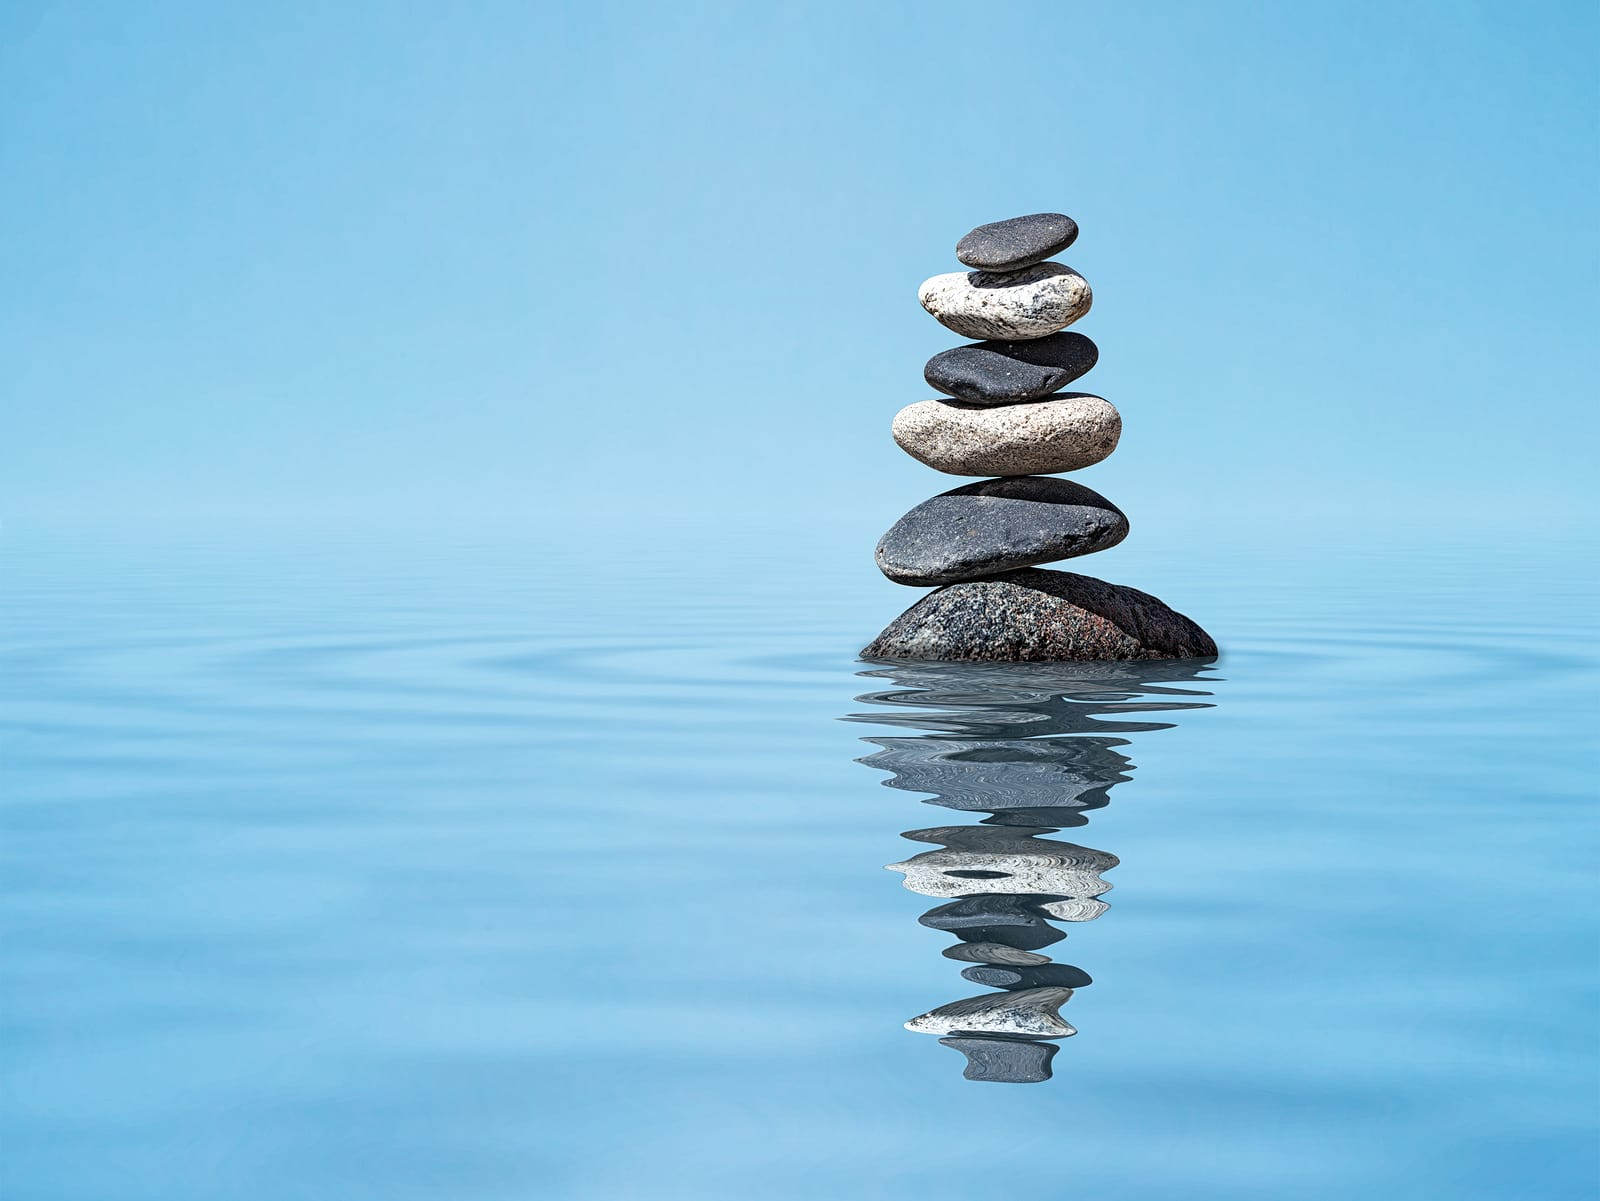 Is mindfulness a religious or spiritual practice?